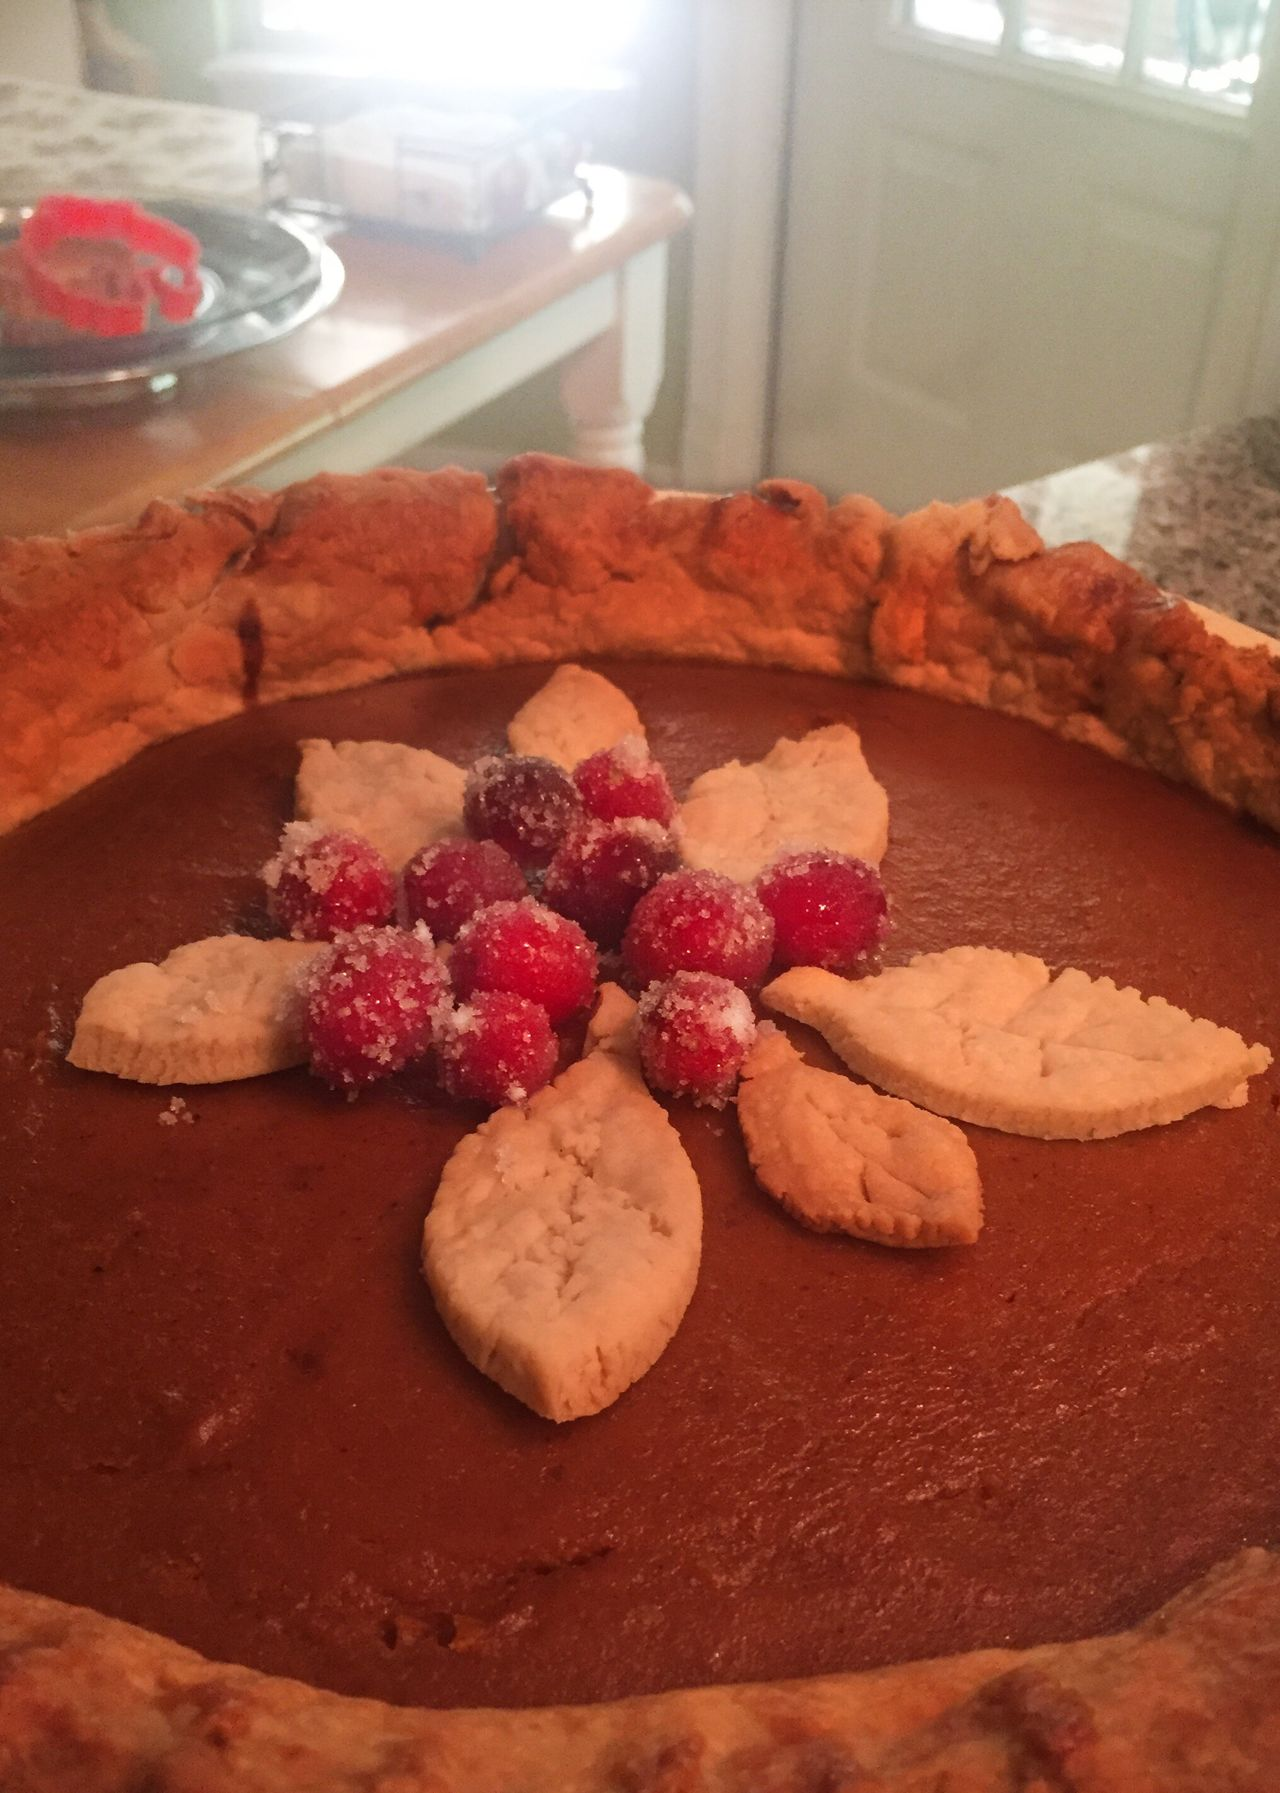 Pumpkin pie with Candied cranberry garnish. Pumpkin Pie Cranberries Kitchen Recipe Candied Squash Holiday Traditional Temptation Dessert Ready-to-eat Close-up Thanksgiving Autumn Amateur Festive Family Sweet Food No People Indoors  Food Day Freshness Warm Love